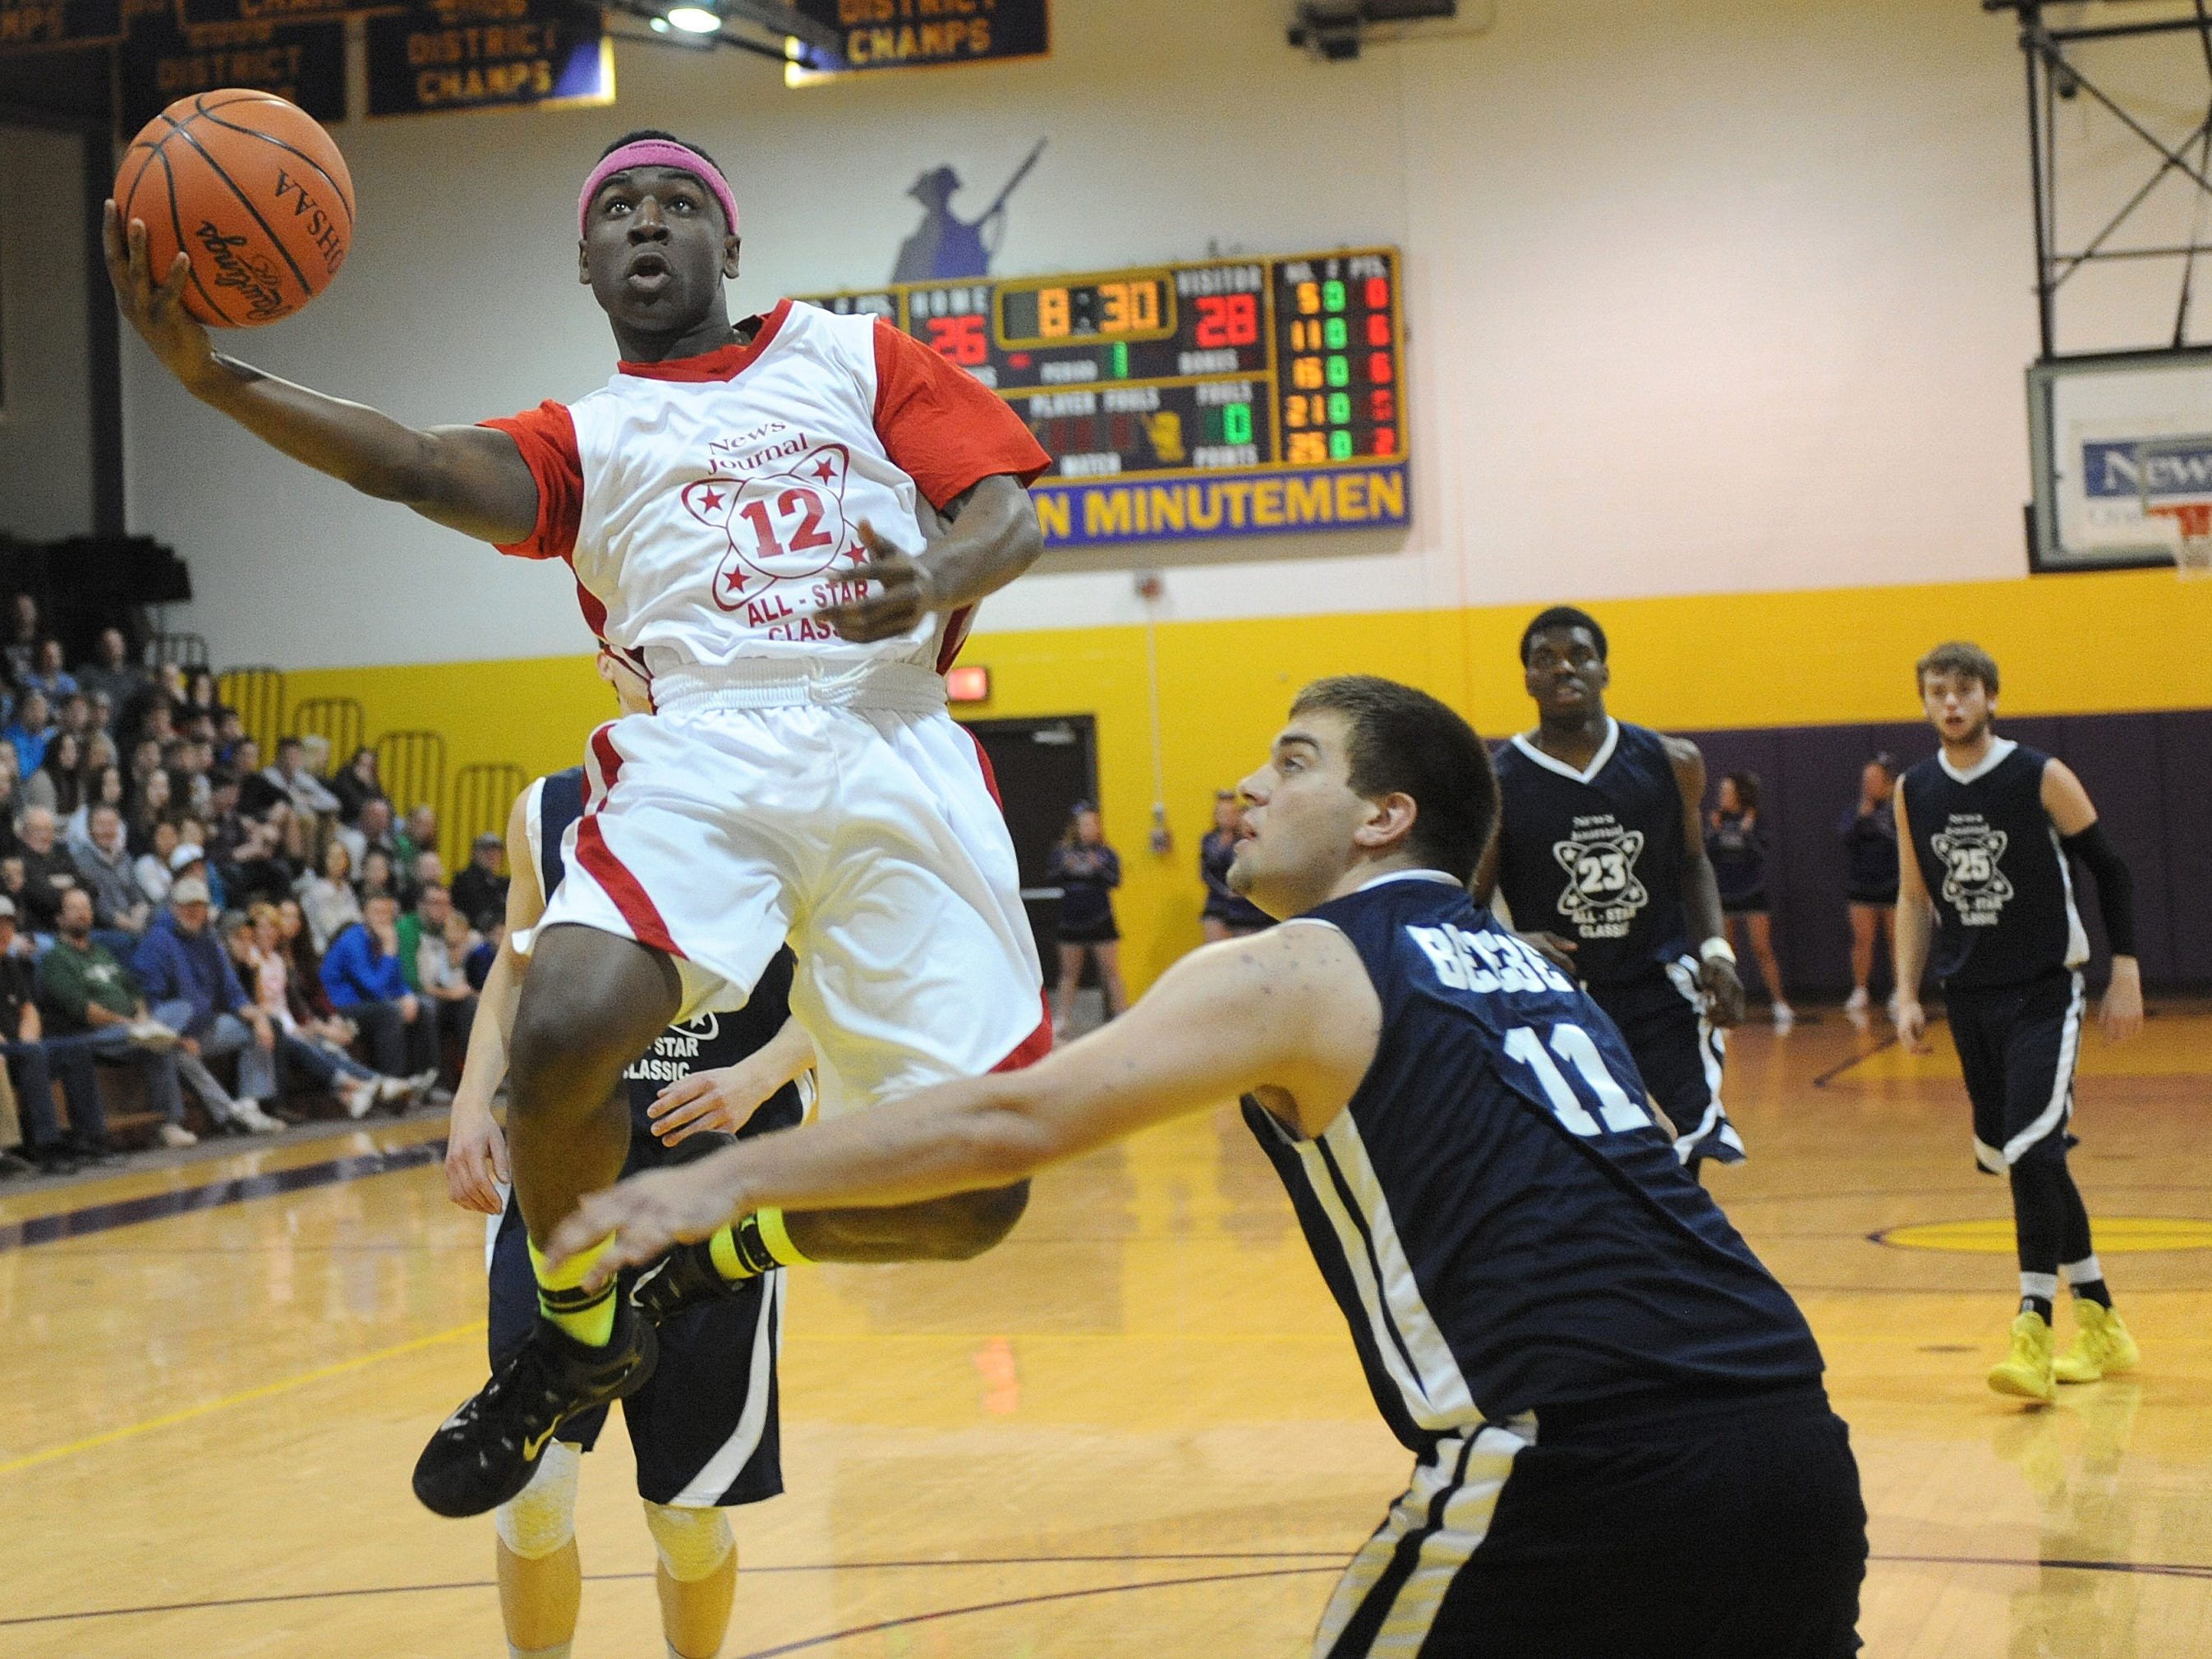 Asante Wilder floats toward the basket for a shot during the 37th annual News Journal All-Star Basketball Classic at Lexington High School.